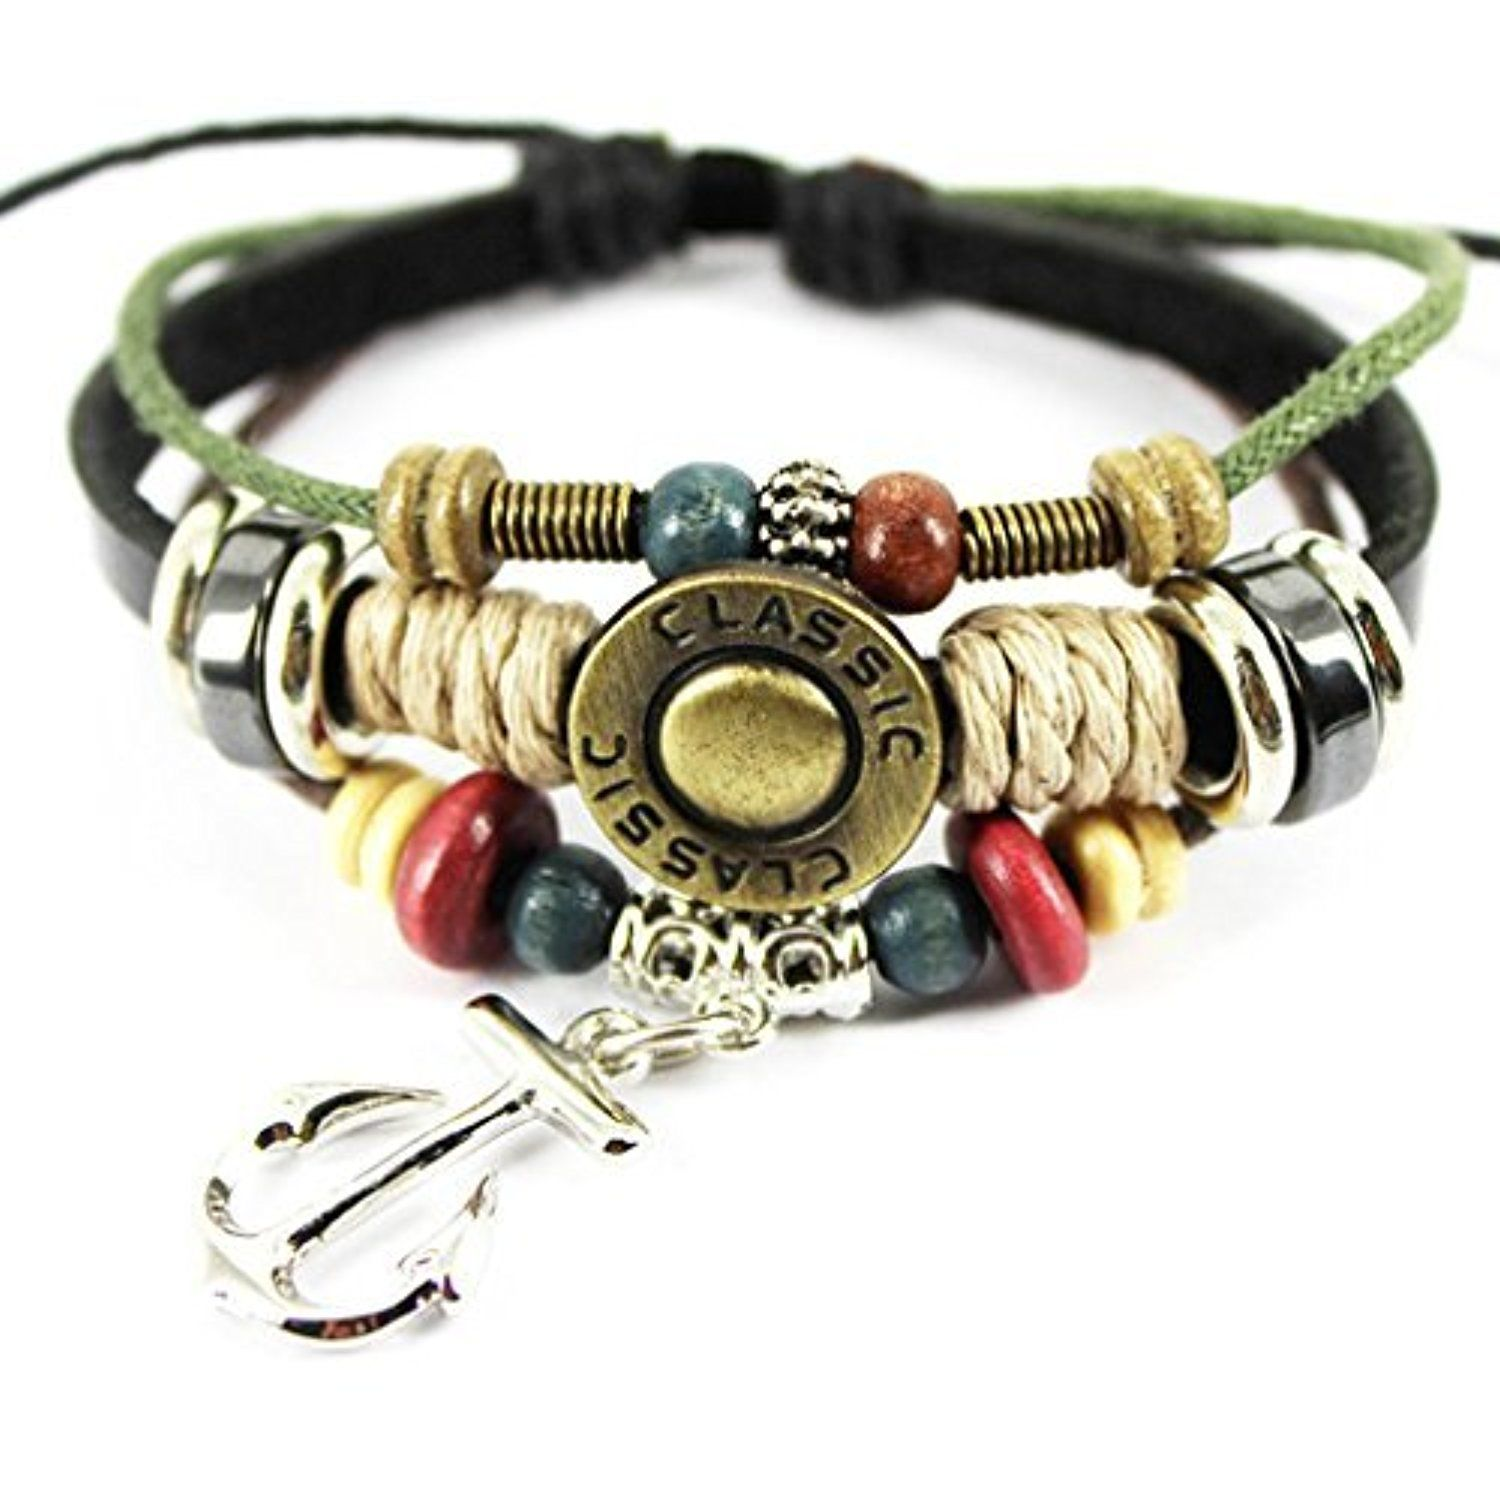 Elimoons personalized leather woven braided adjustable wrap bracelet